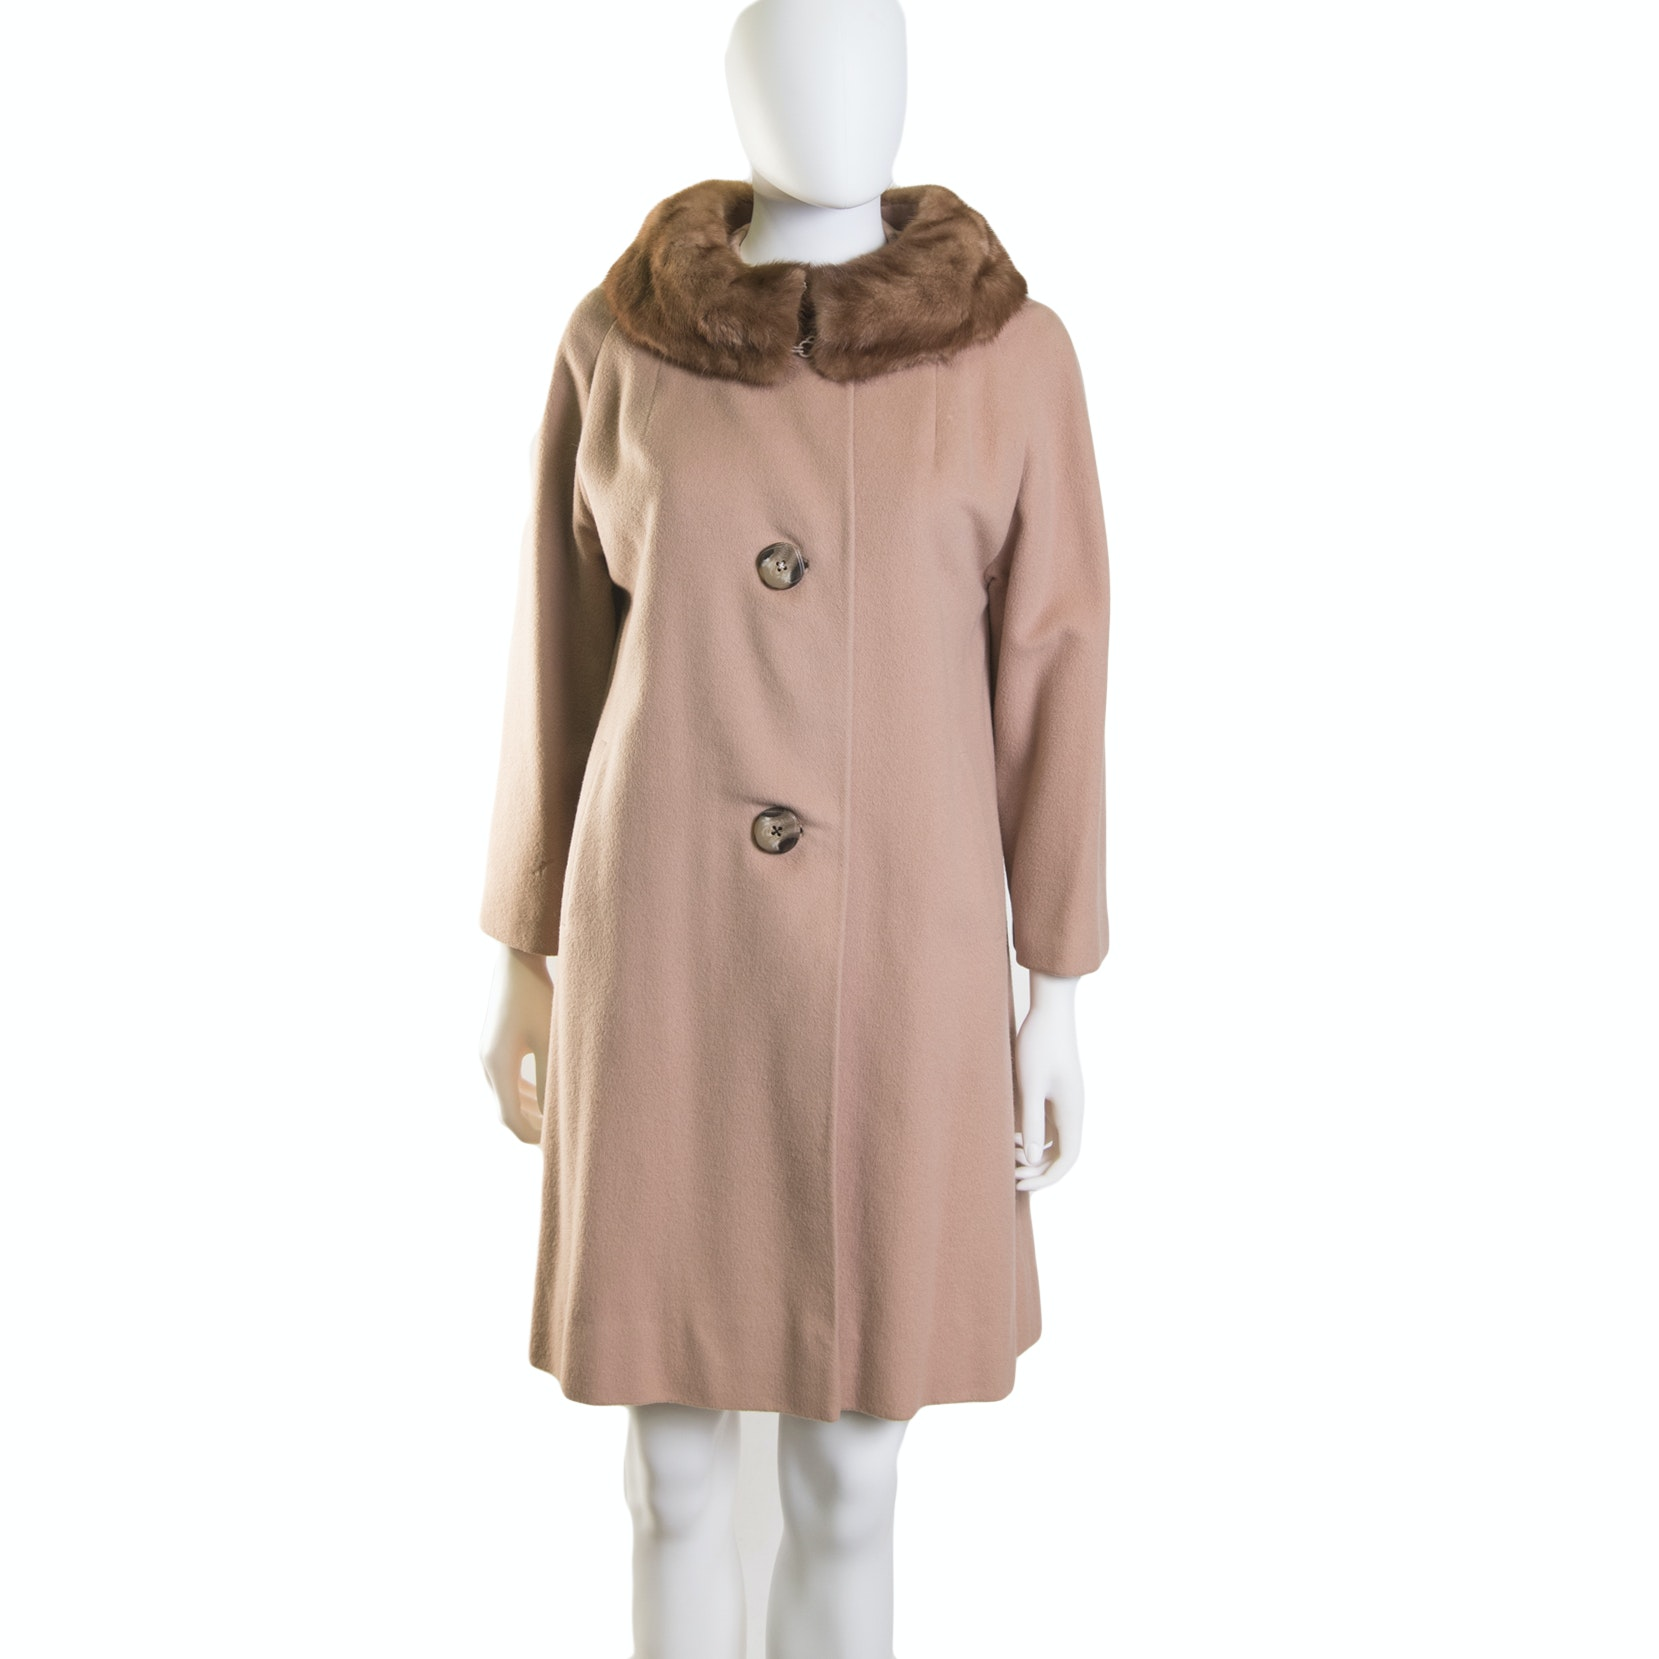 Women's Vintage Cashmere Dress Coat with Mink Collar